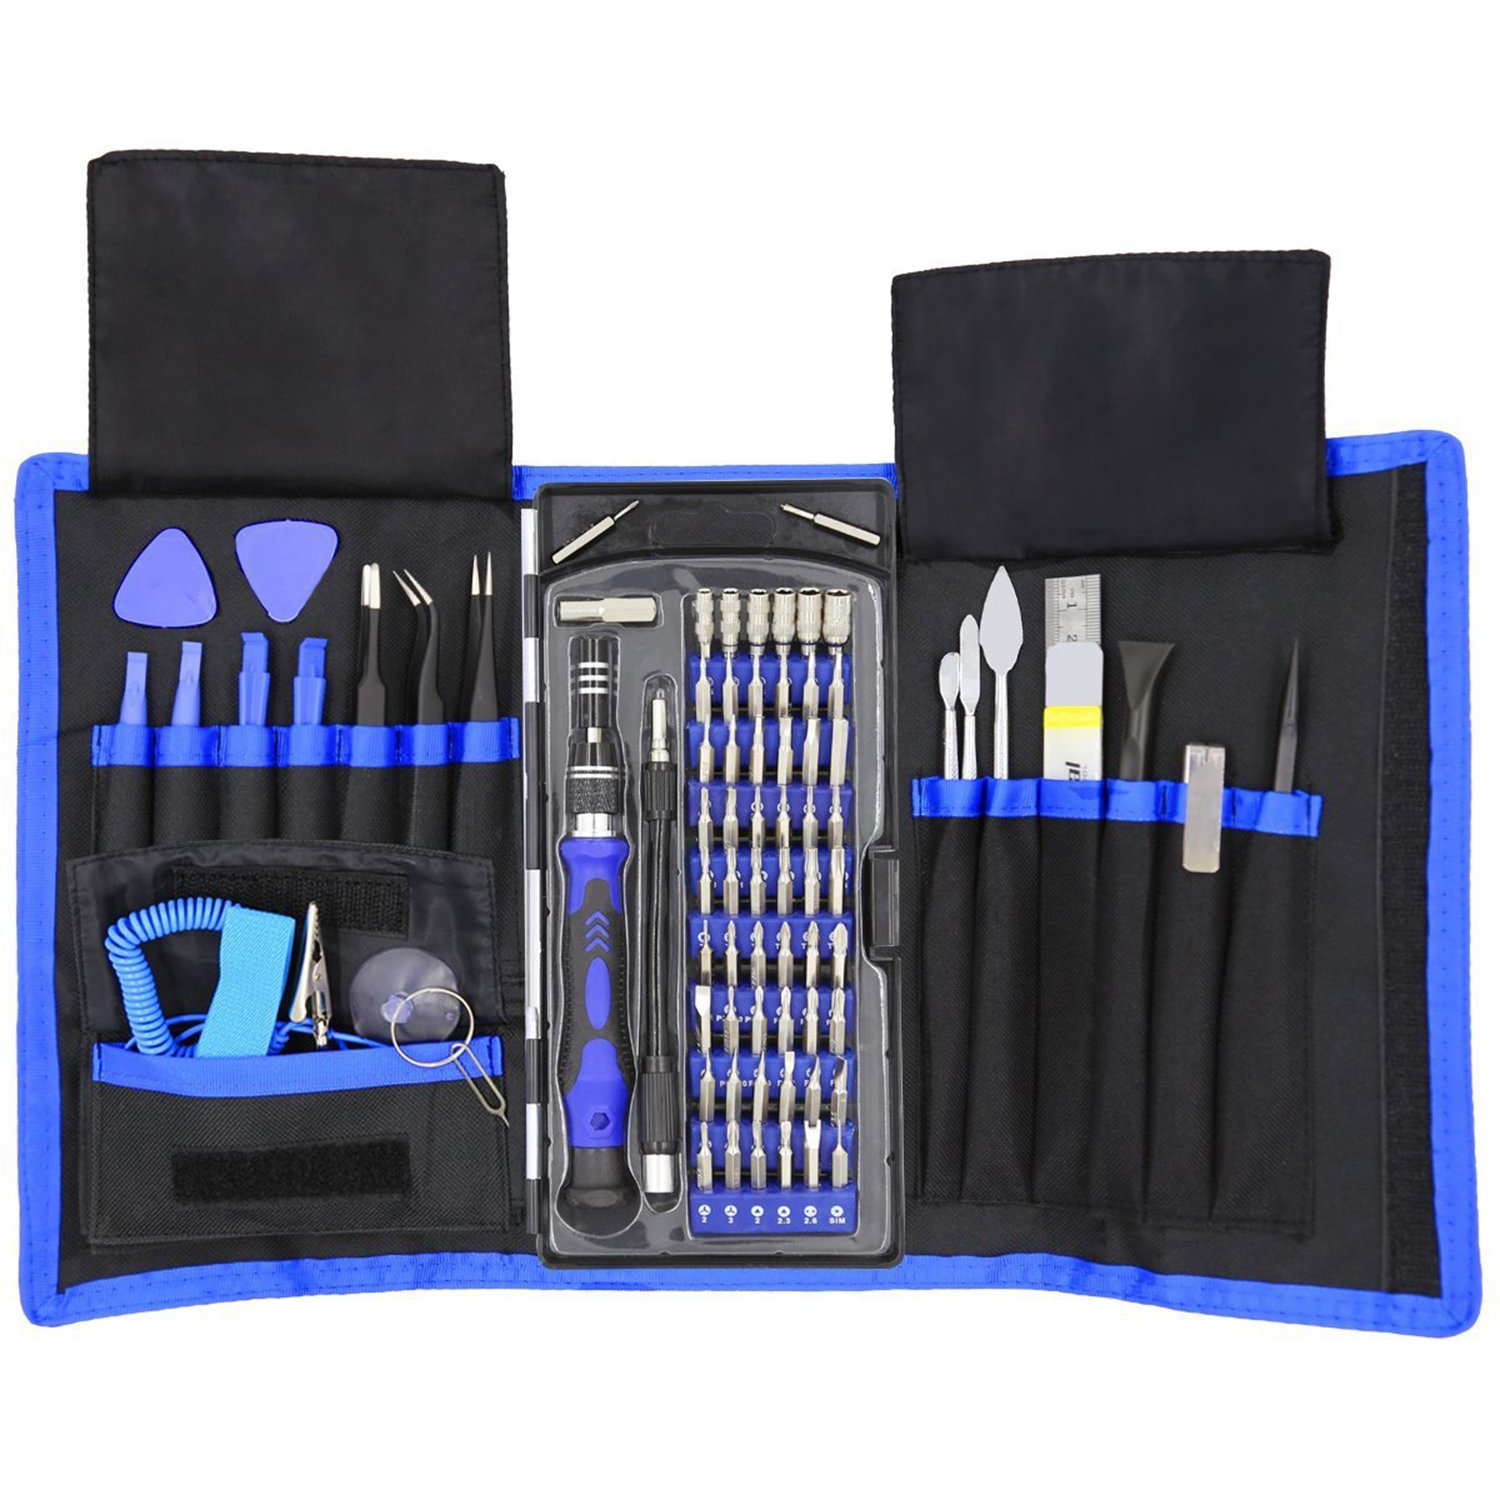 Maexus 80 in 1 Precision Screwdriver Set Magnetic Nut Drivers Kit, Professional Electronics Repair Tool Kit with Oxford Bag for Repair Cell Phone, iPhone, iPad, Watch, Tablet, PC, MacBook Etc.